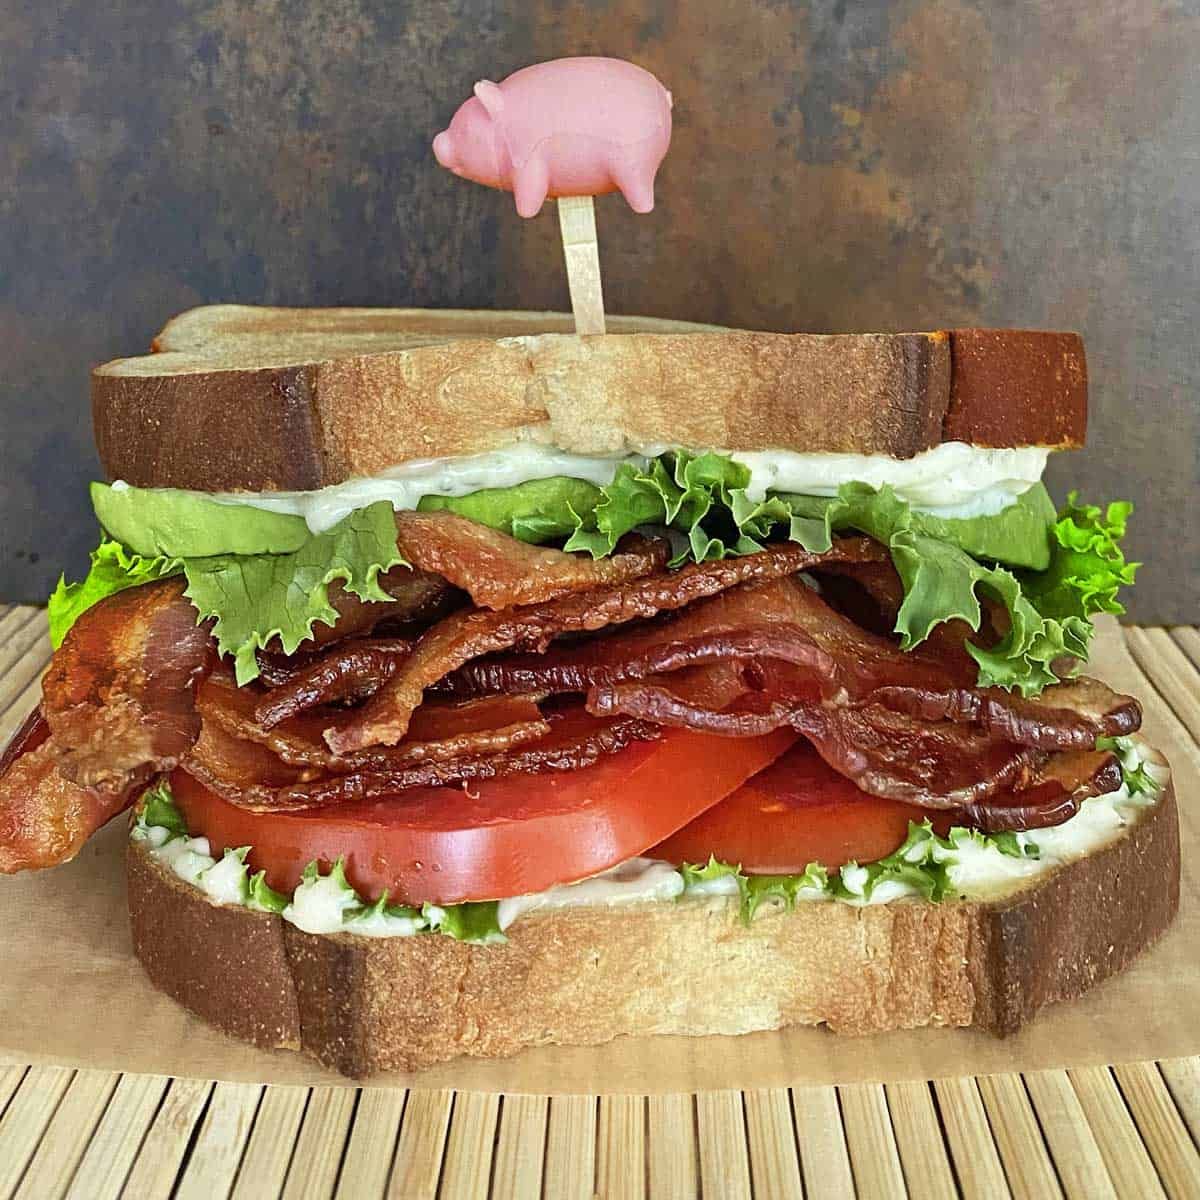 bacon lettuce avocado tomato sandwich skewered with pig toothpick